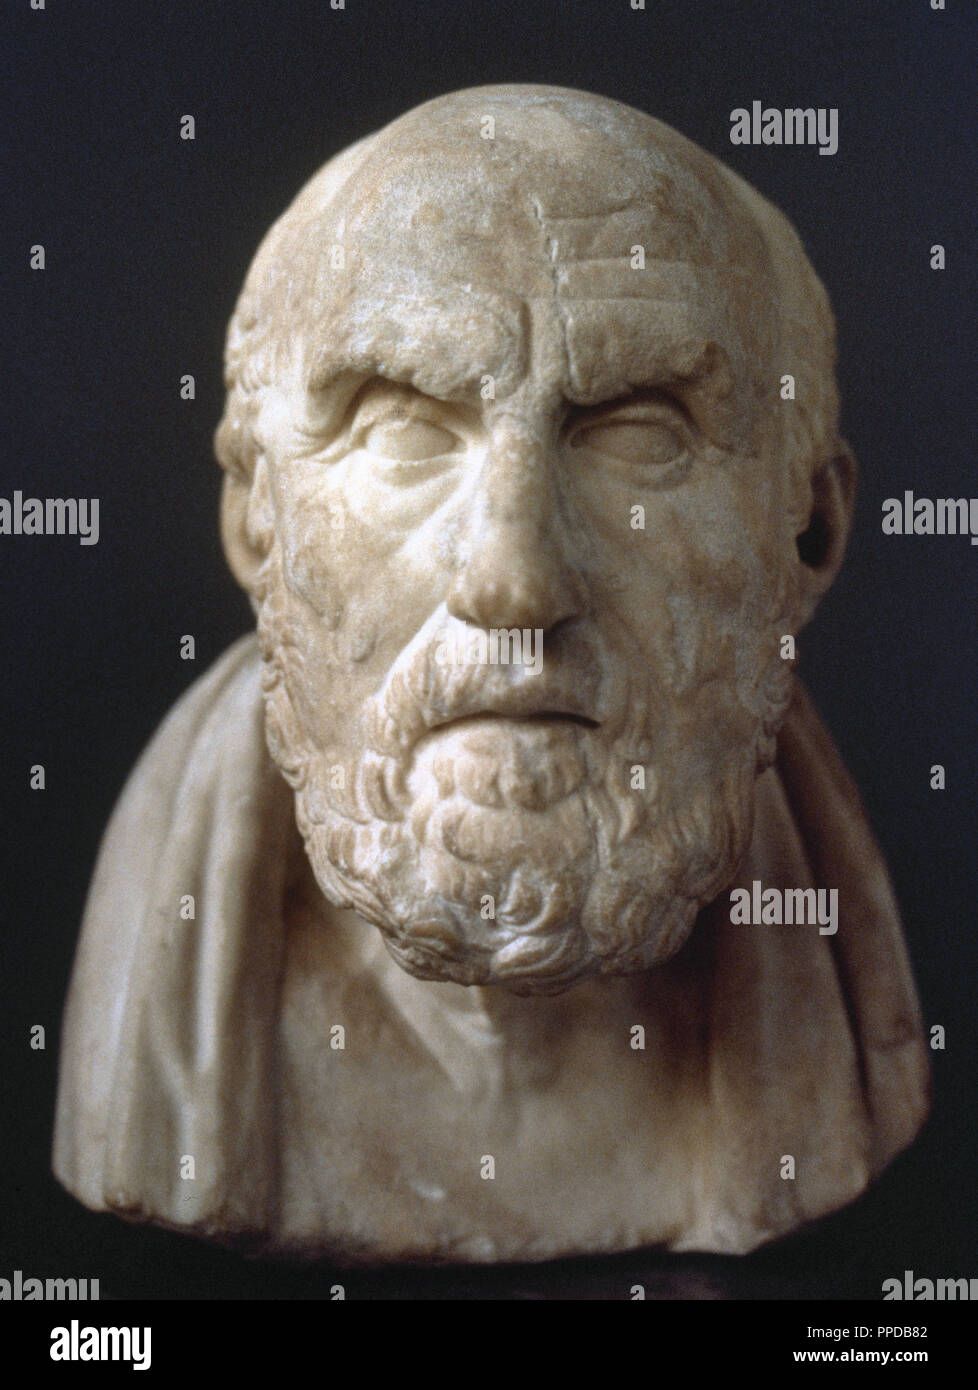 Chrysippus (280-206 BC). Greek Stoic philosopher. Stoicism school. Bust. Roman copy from a Hellenistic bust. British Museum. London, England. - Stock Image